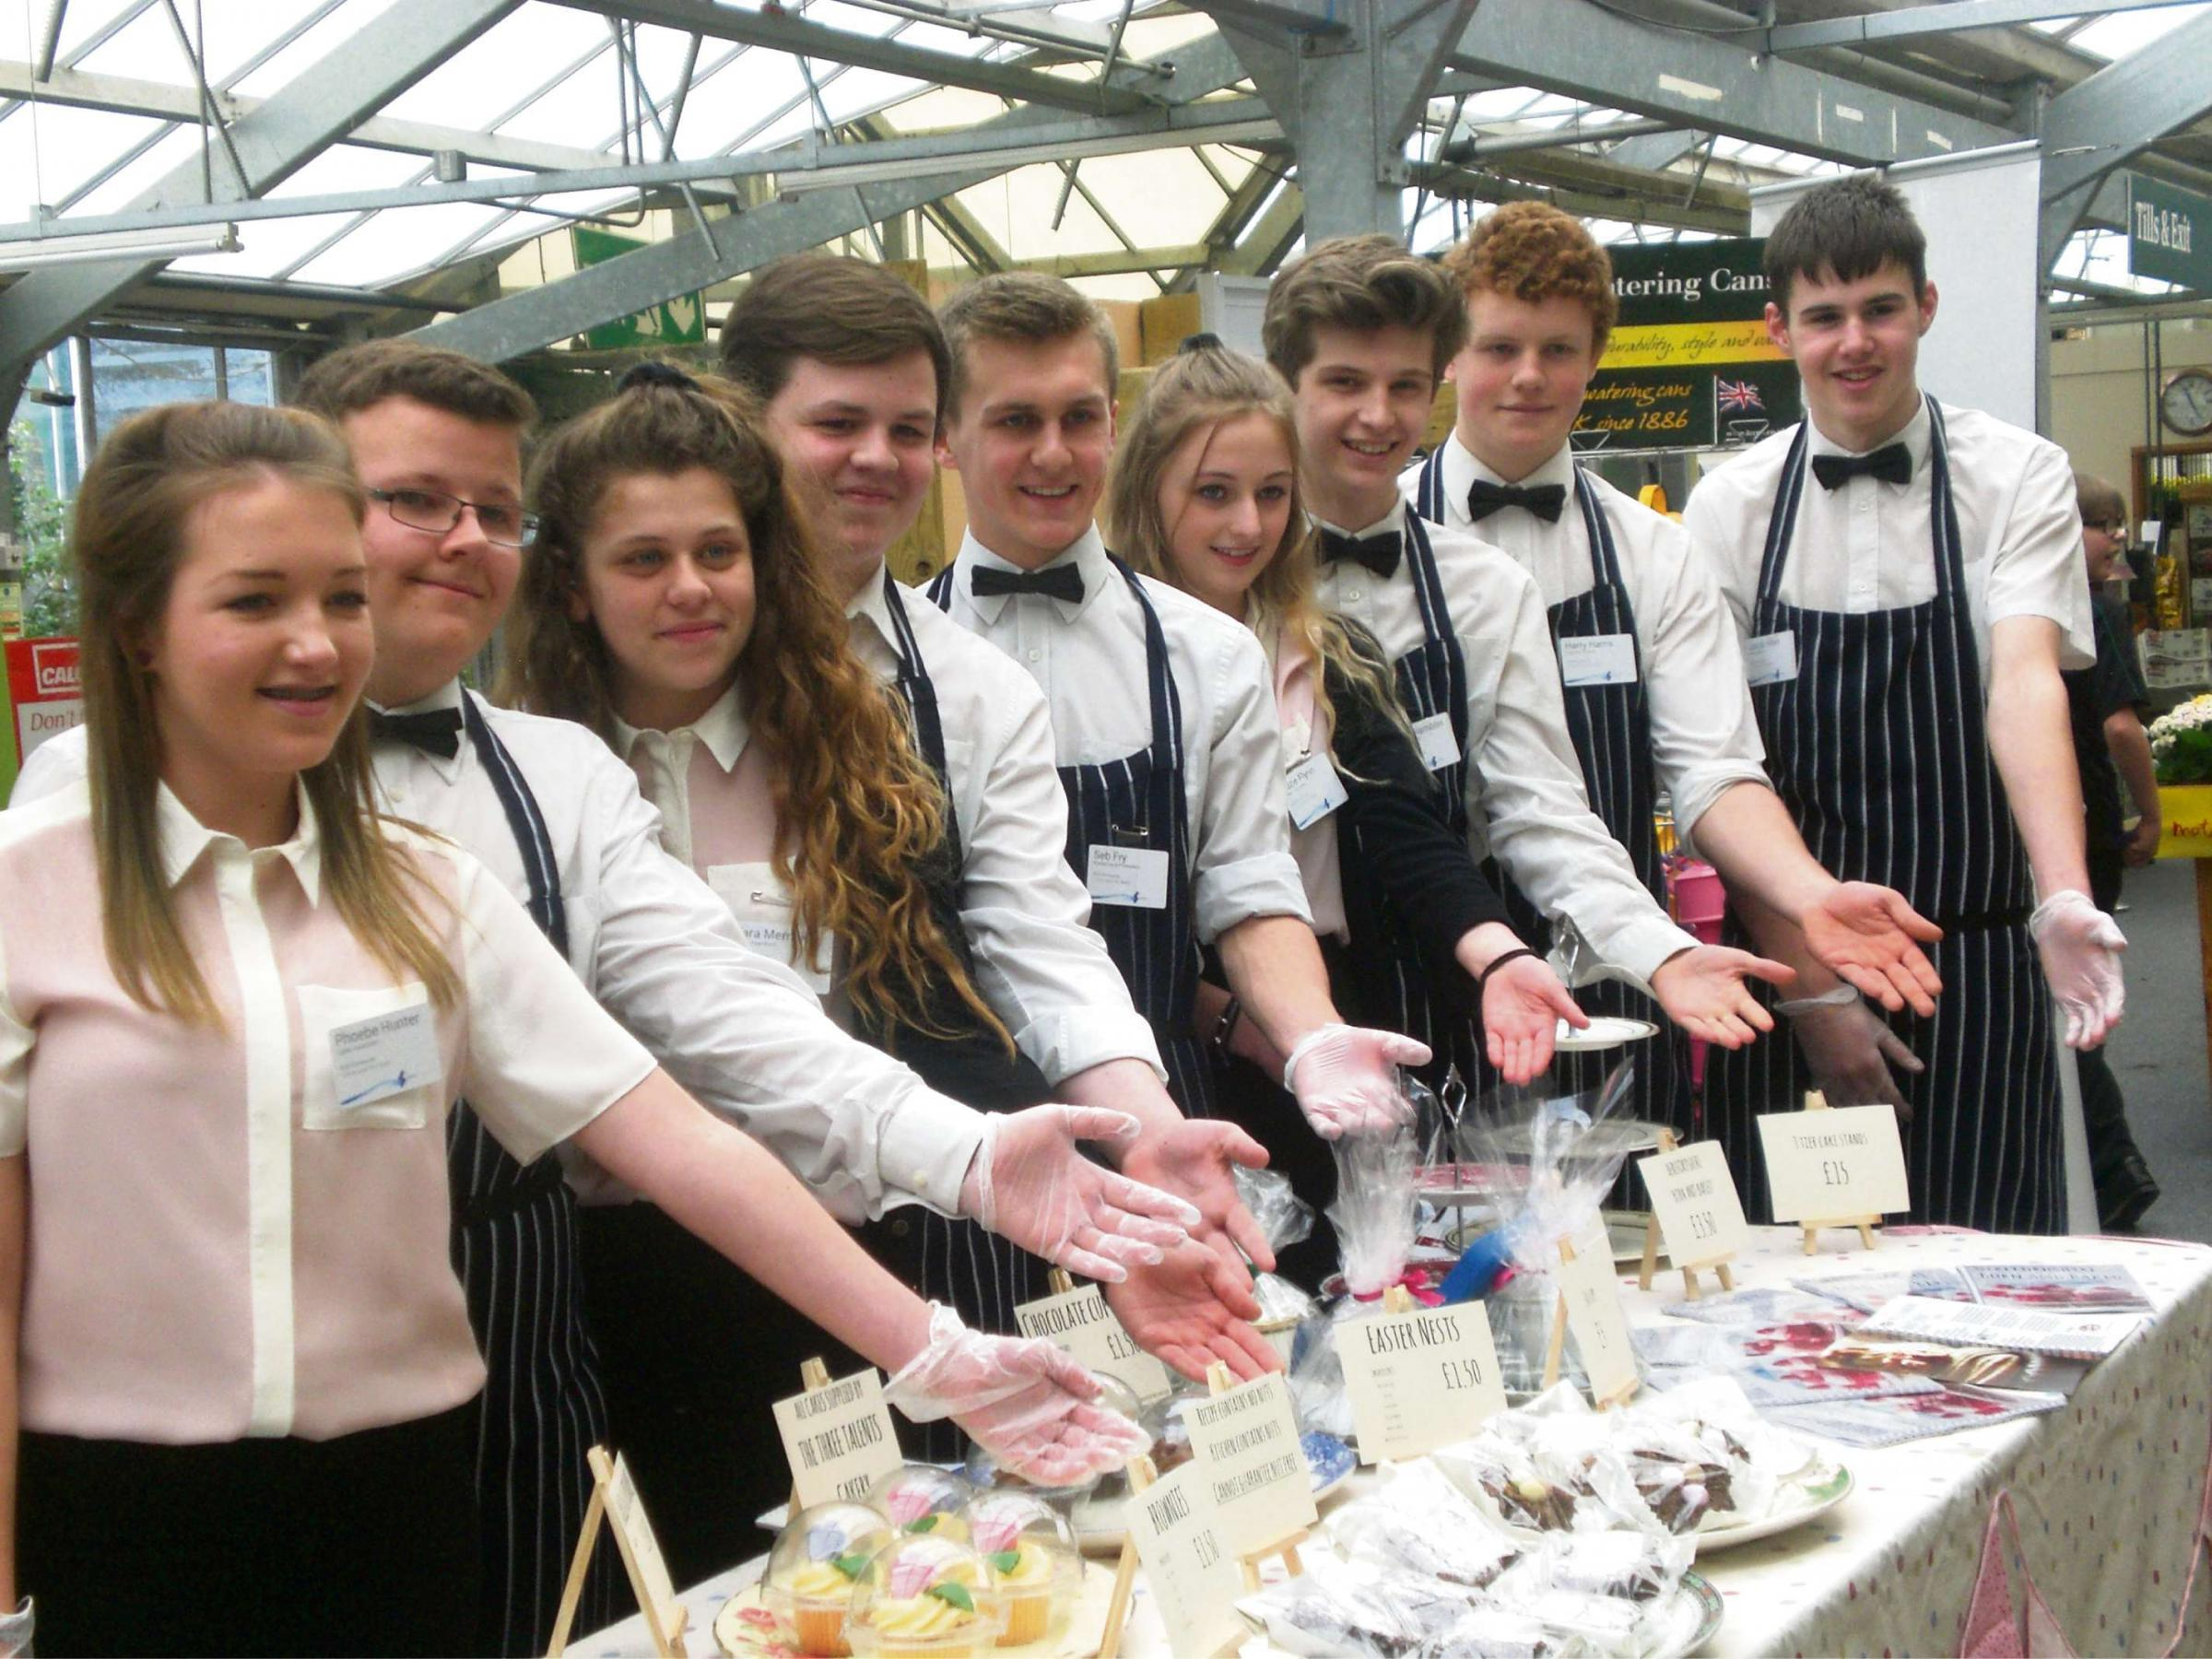 Students from St Mary's R C High School are taking part in the National Young Enterprise competition.